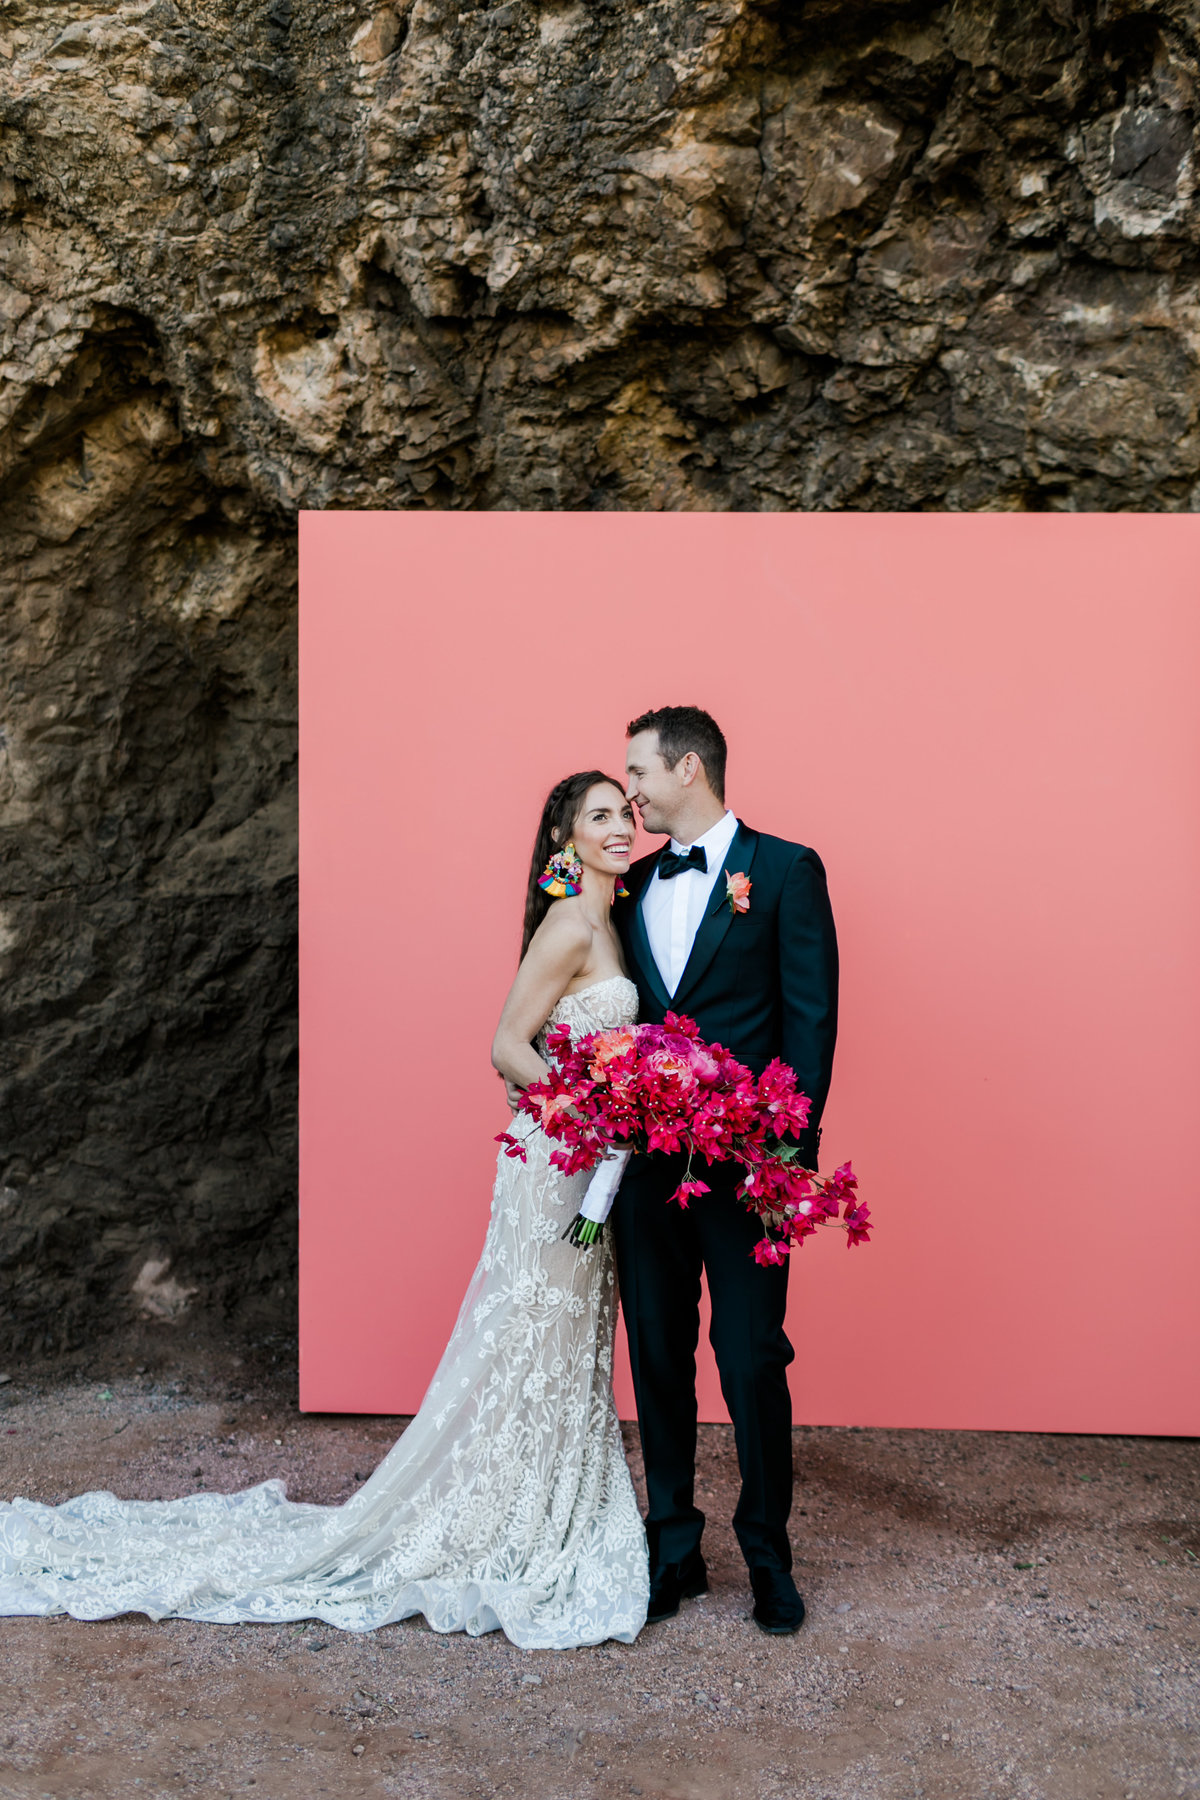 Colorful Desert Wedding Inspiration_Valorie Darling Photography-0726